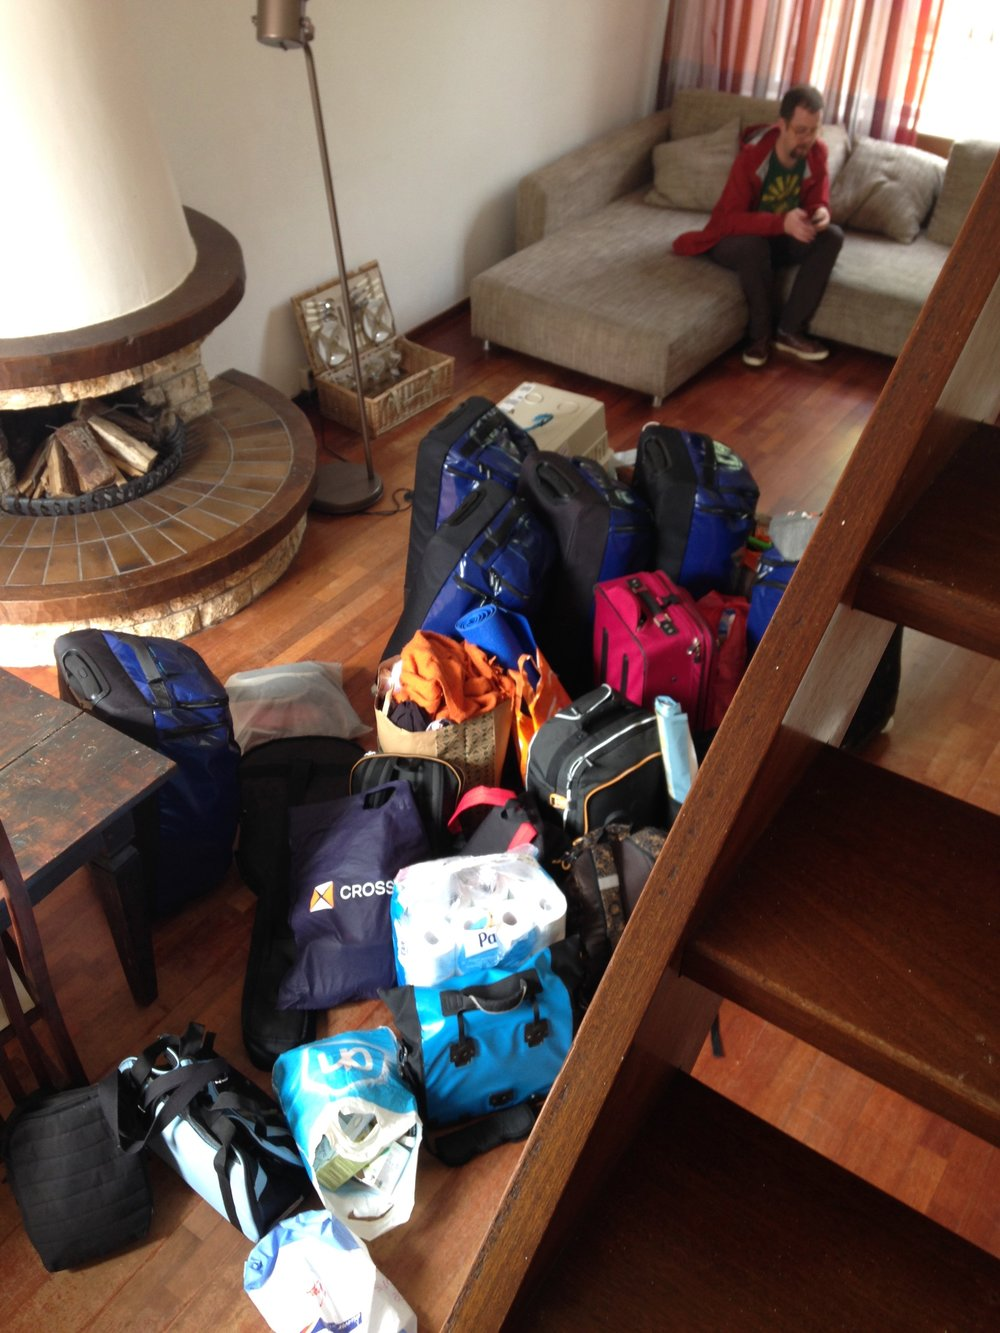 ALL of our belongings.